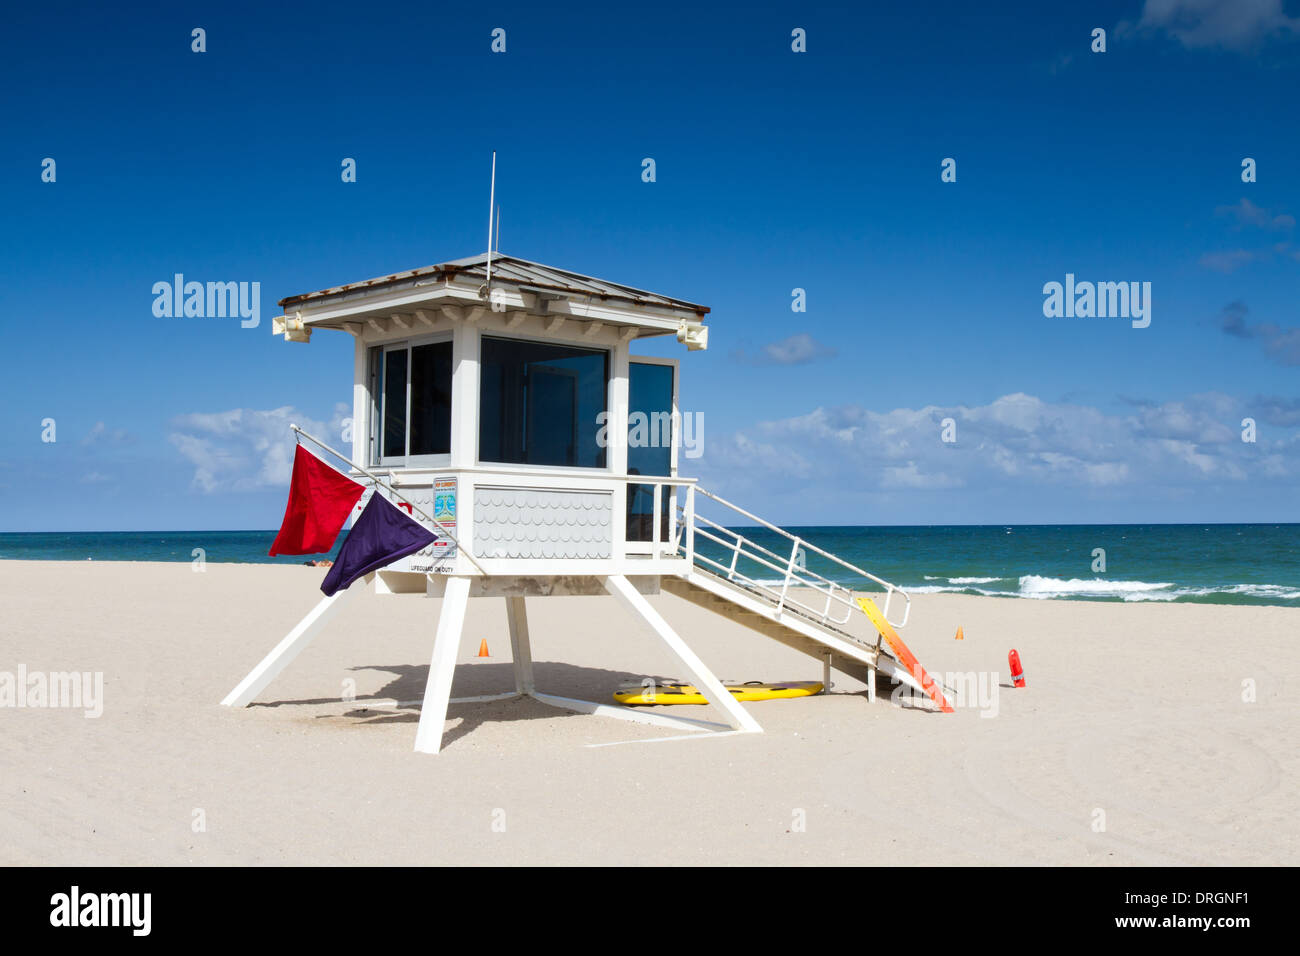 Lifeguard Stand Booth, Fort Lauderdale, Florida, USA Stock Photo